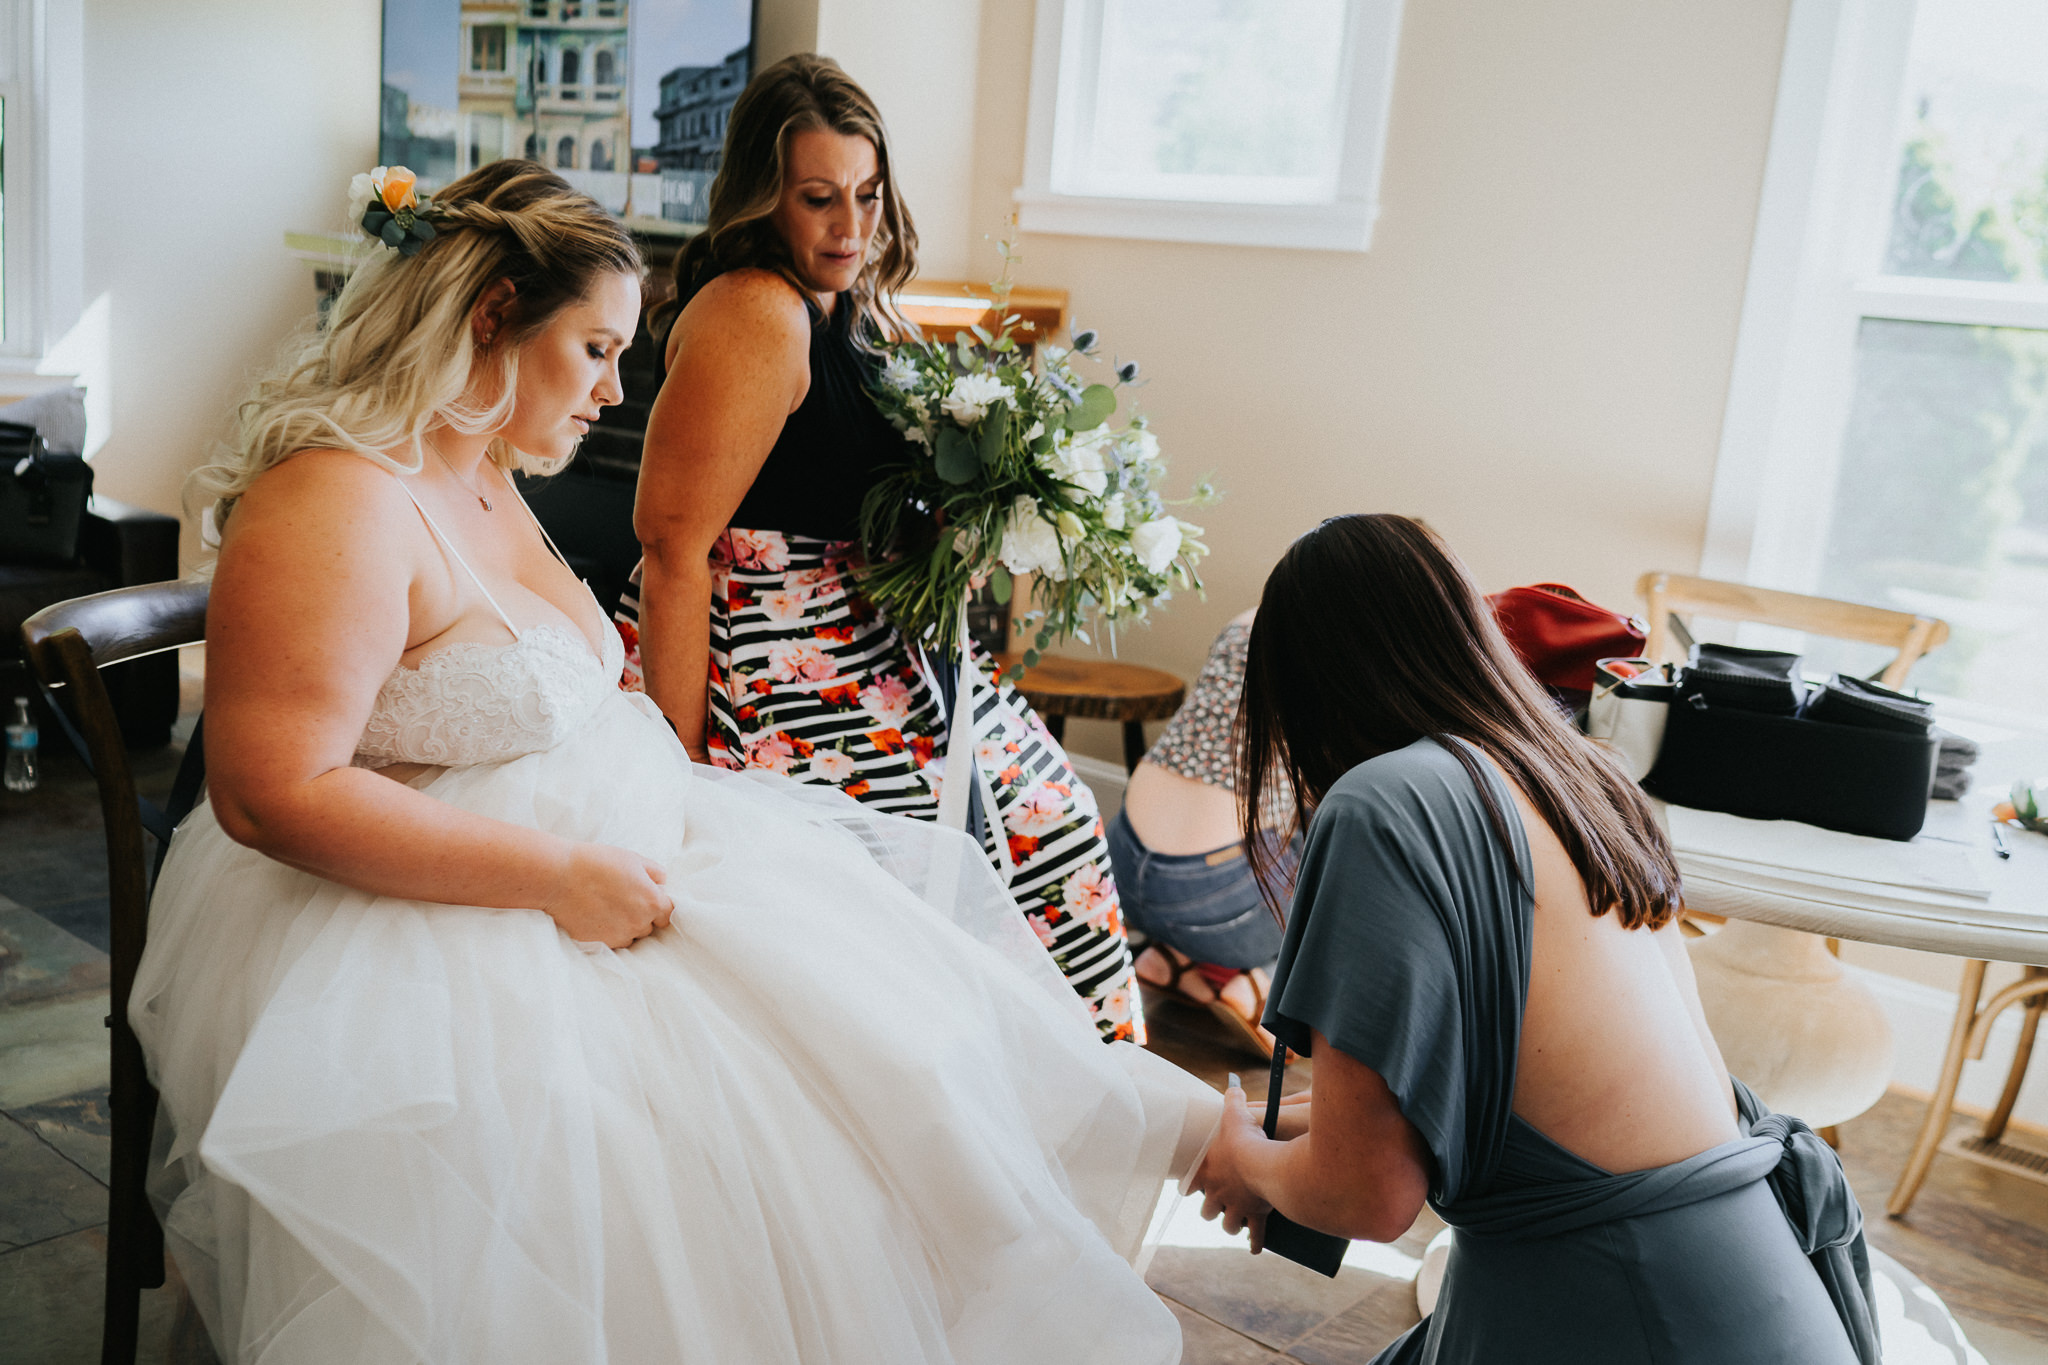 bride mother tear wedding getting ready Best Oregon photographer Alfred Tang photojournalism candid